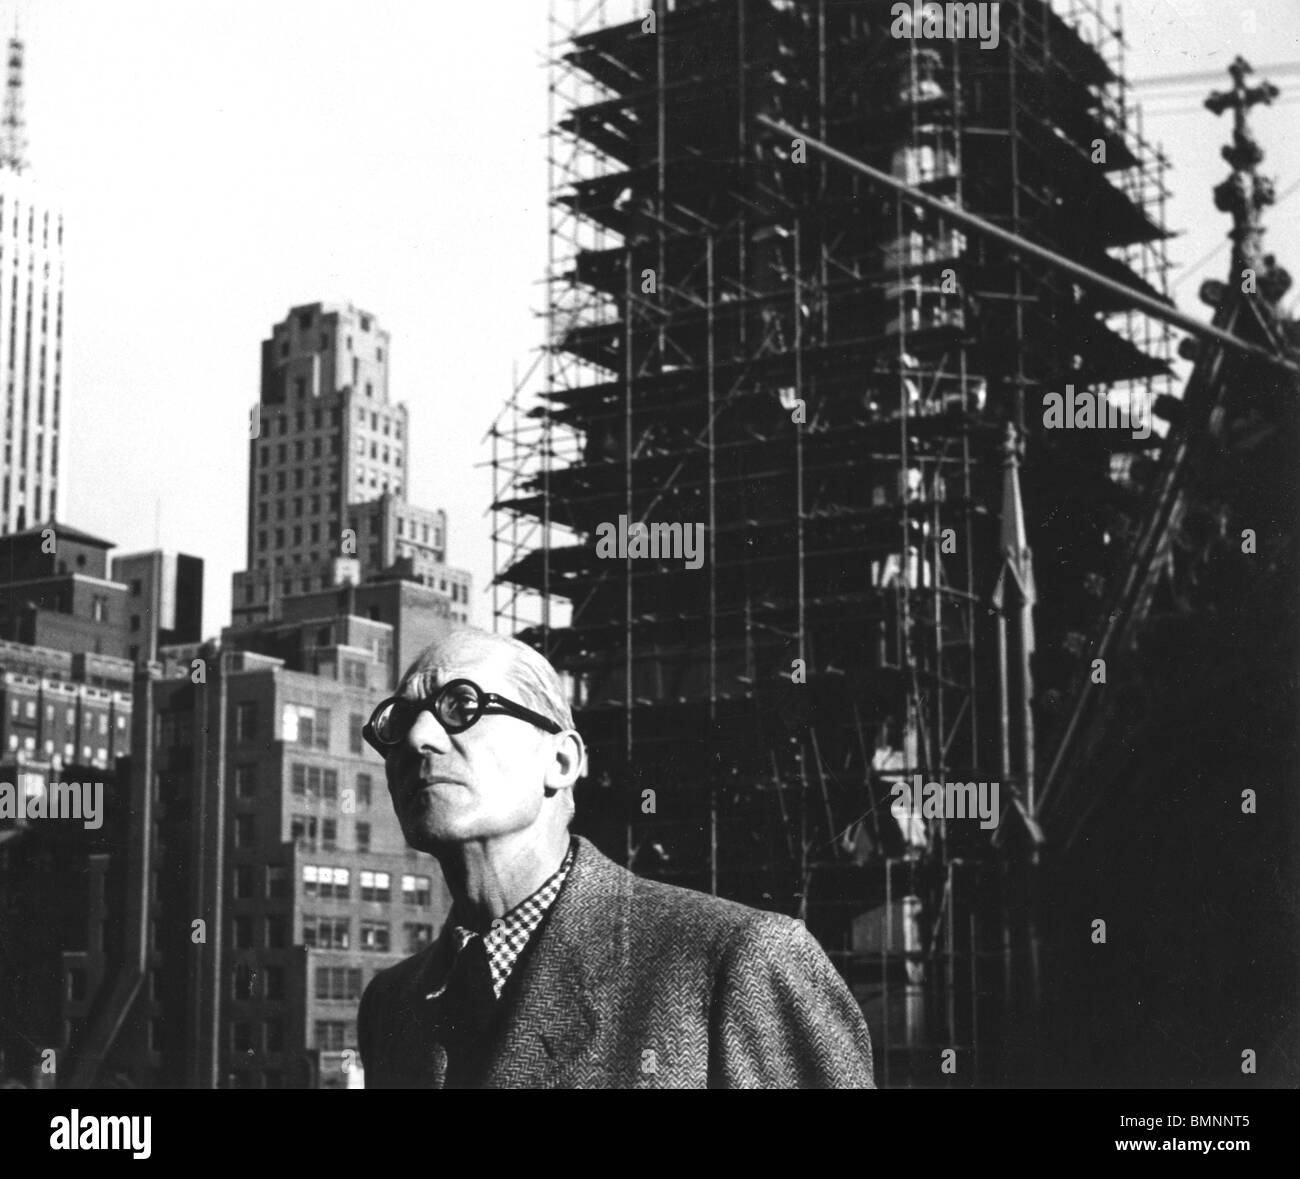 French Architect le corbusier - swiss-french architect (1887-1965) in new york